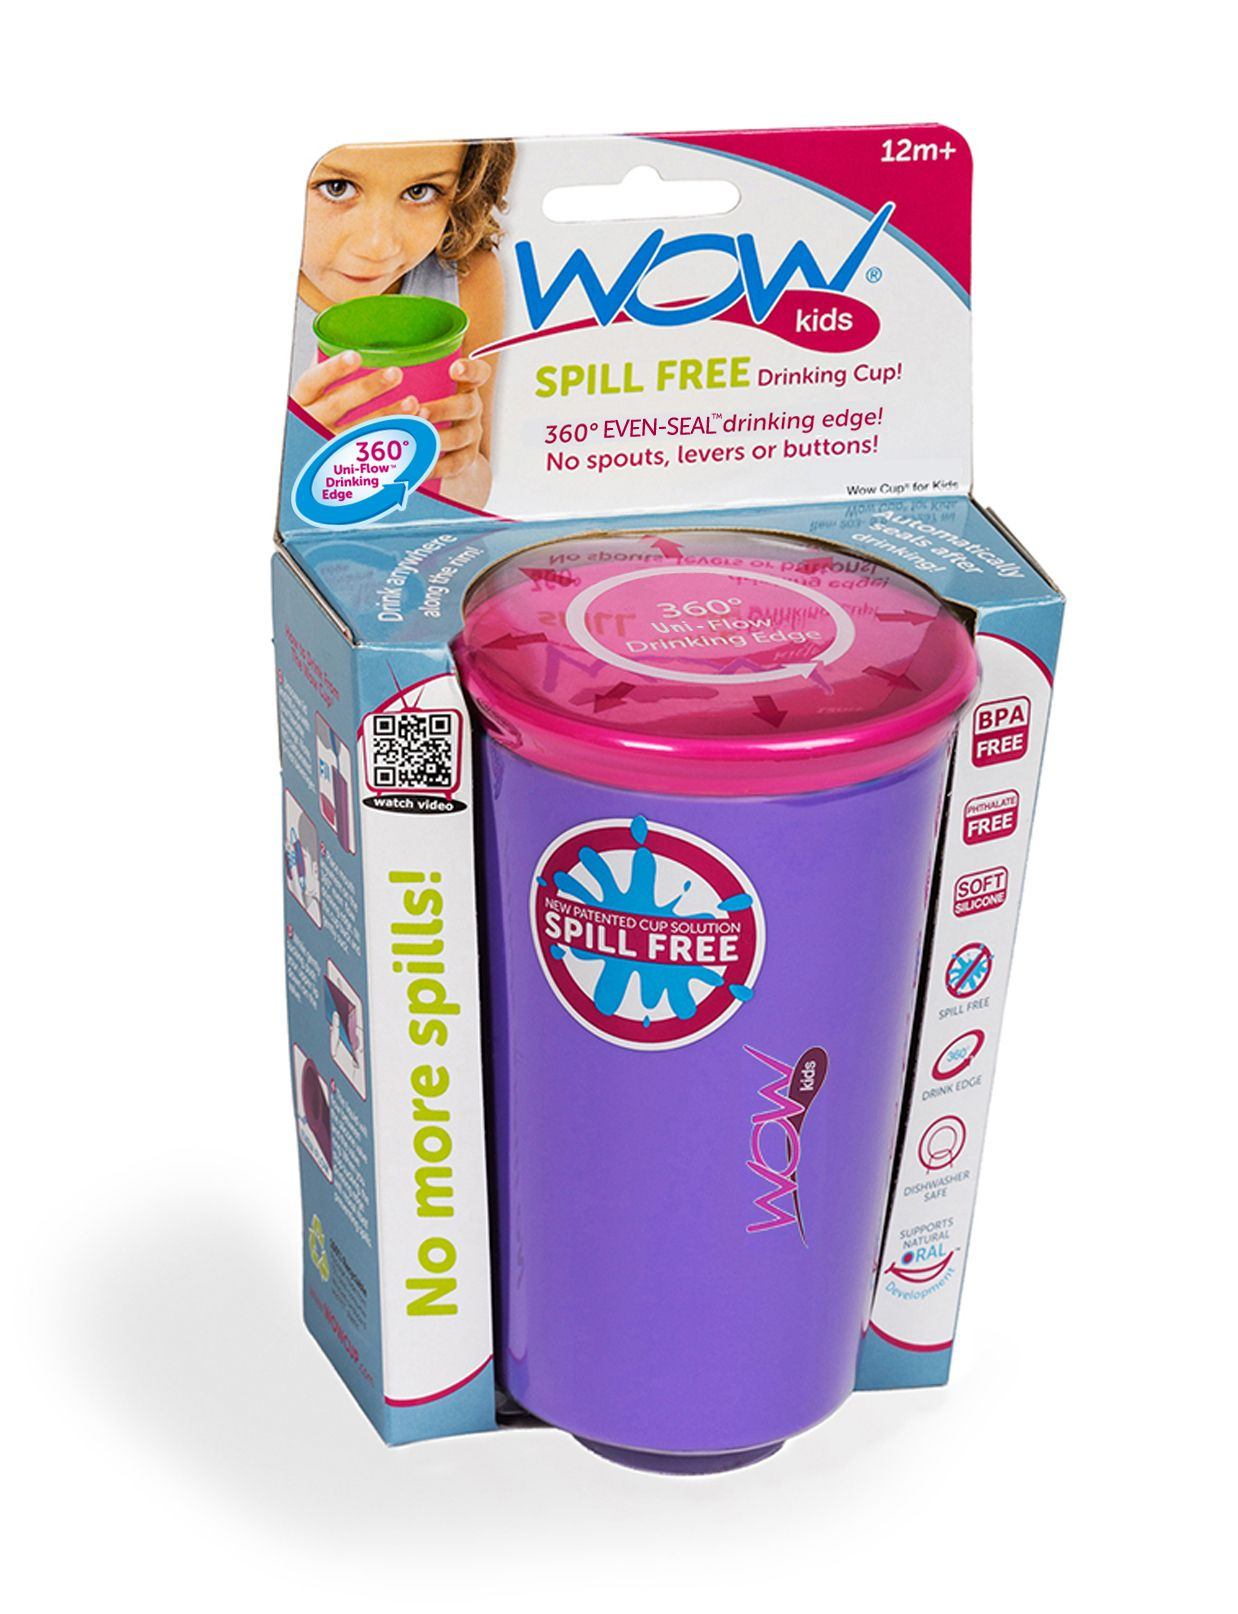 Pin on Wow Cup for Kids